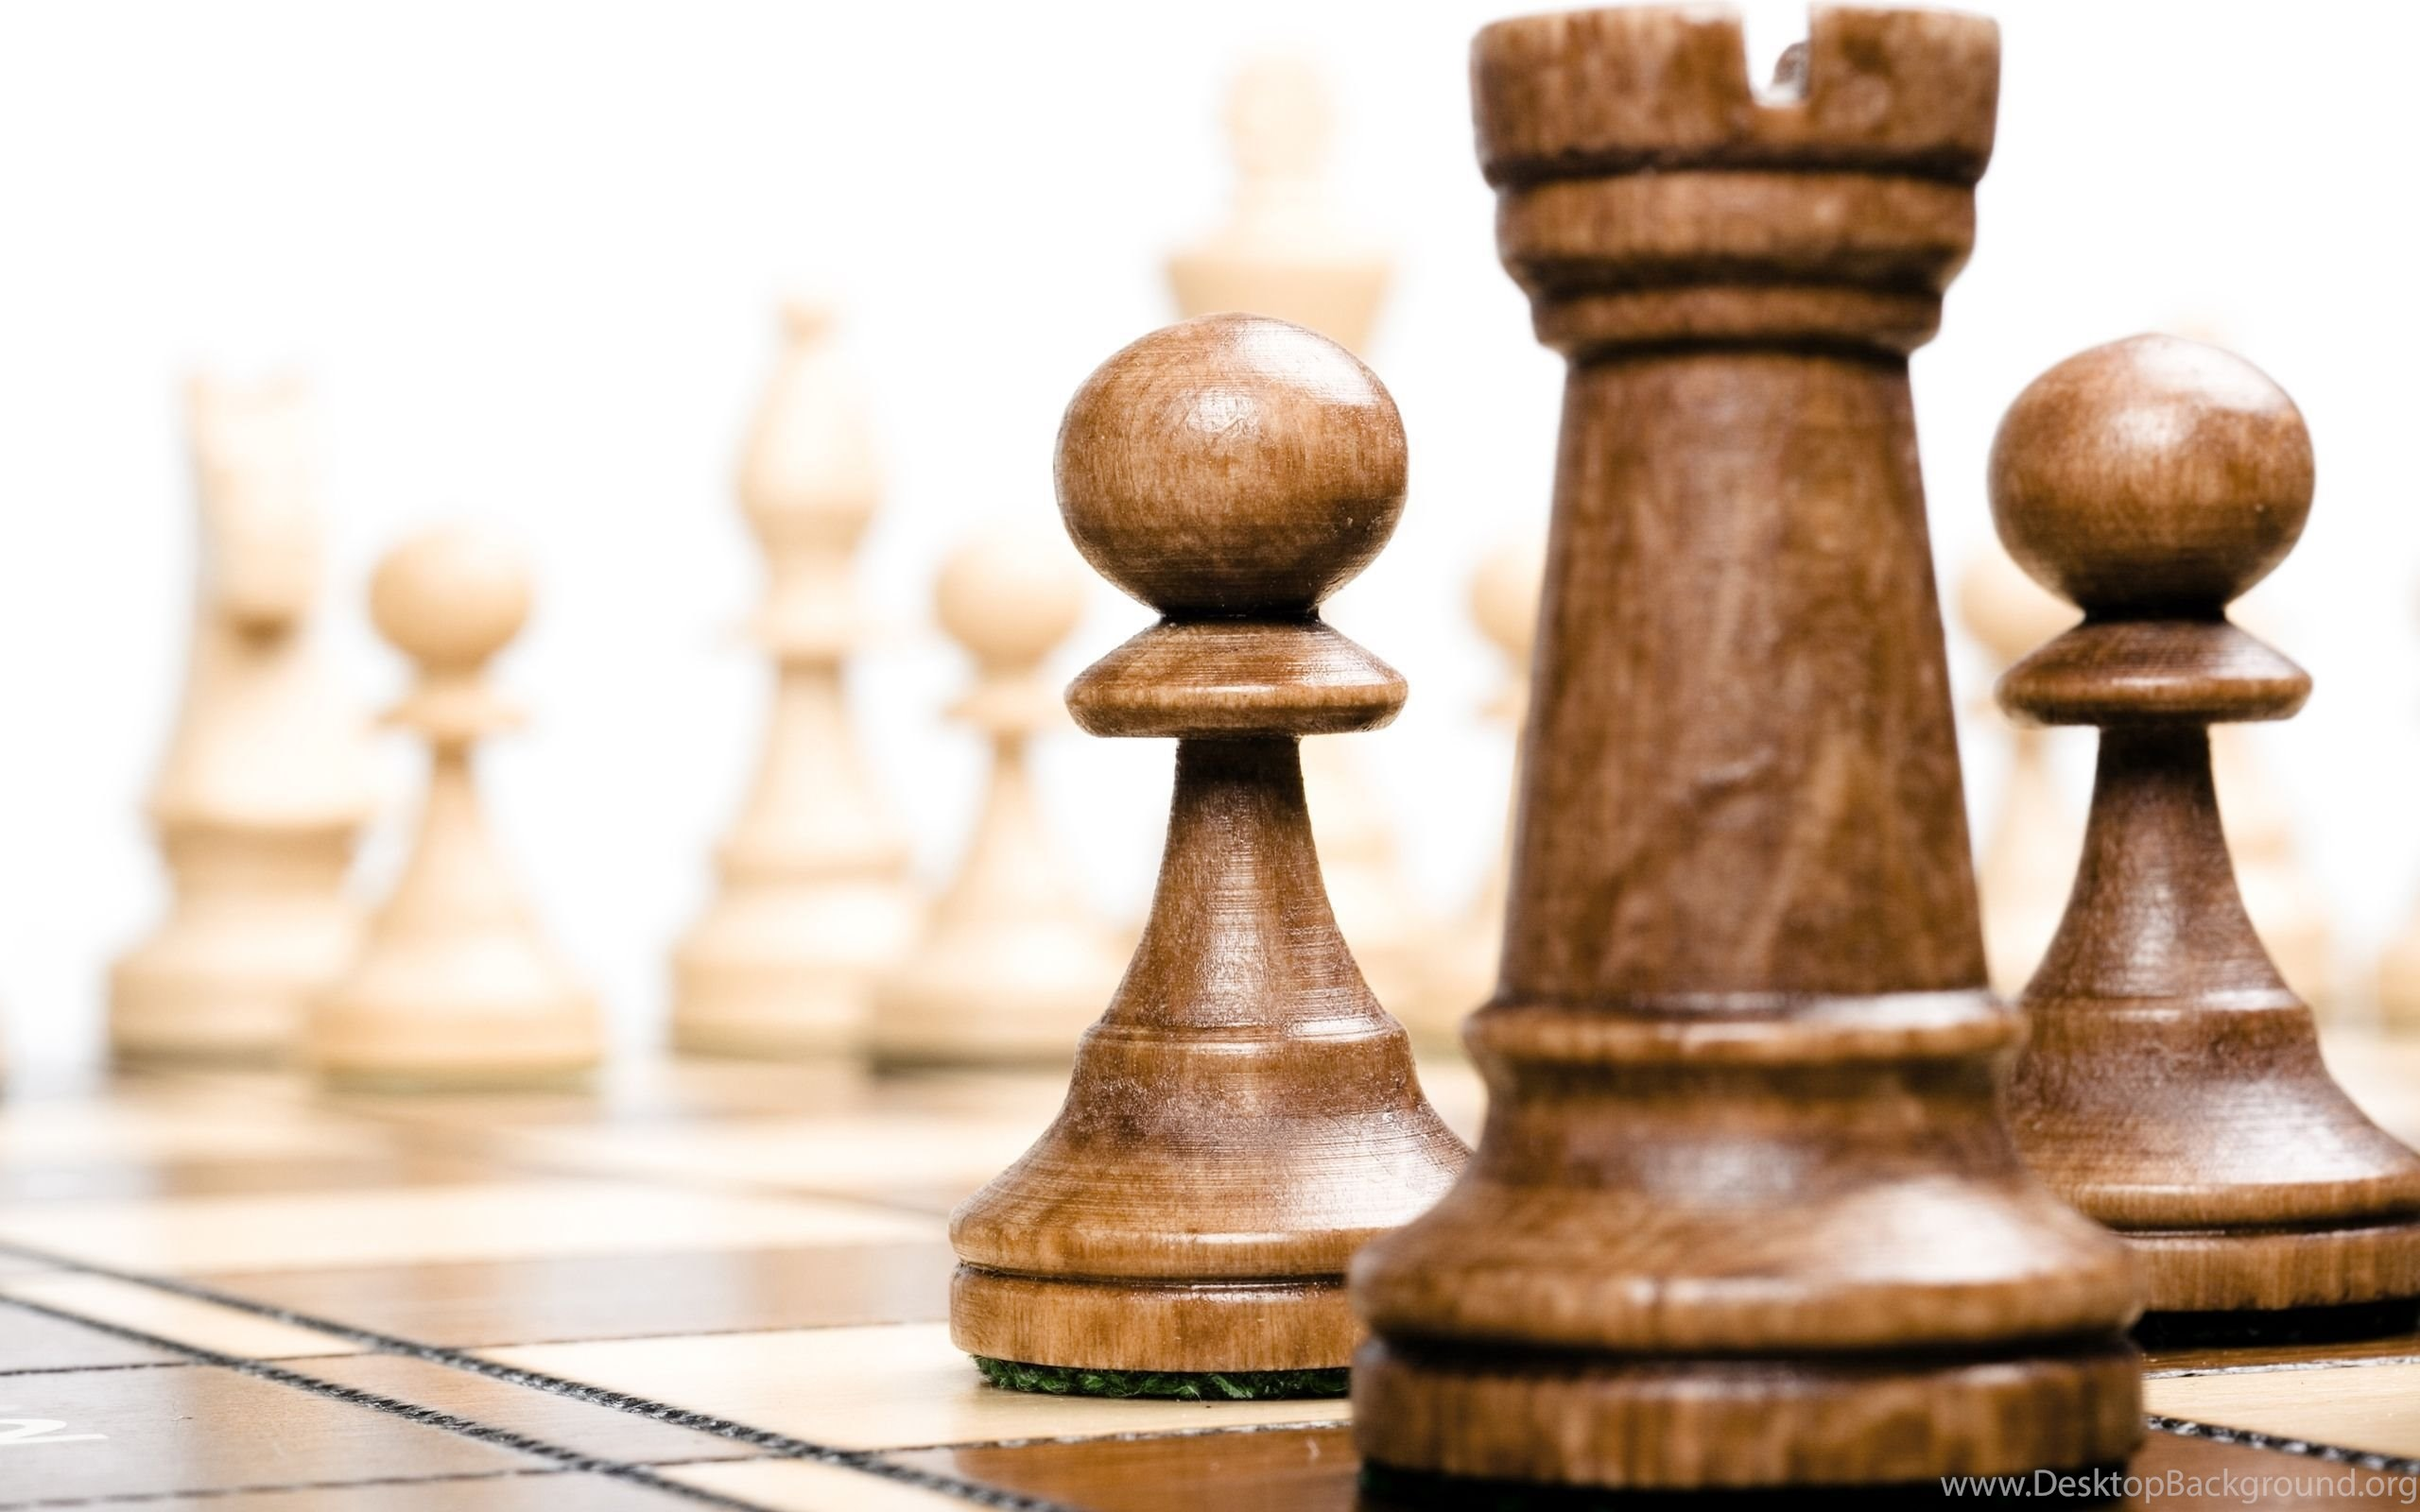 Download Chess Wallpapers HD 2861 2560x1600 Px High Resolution